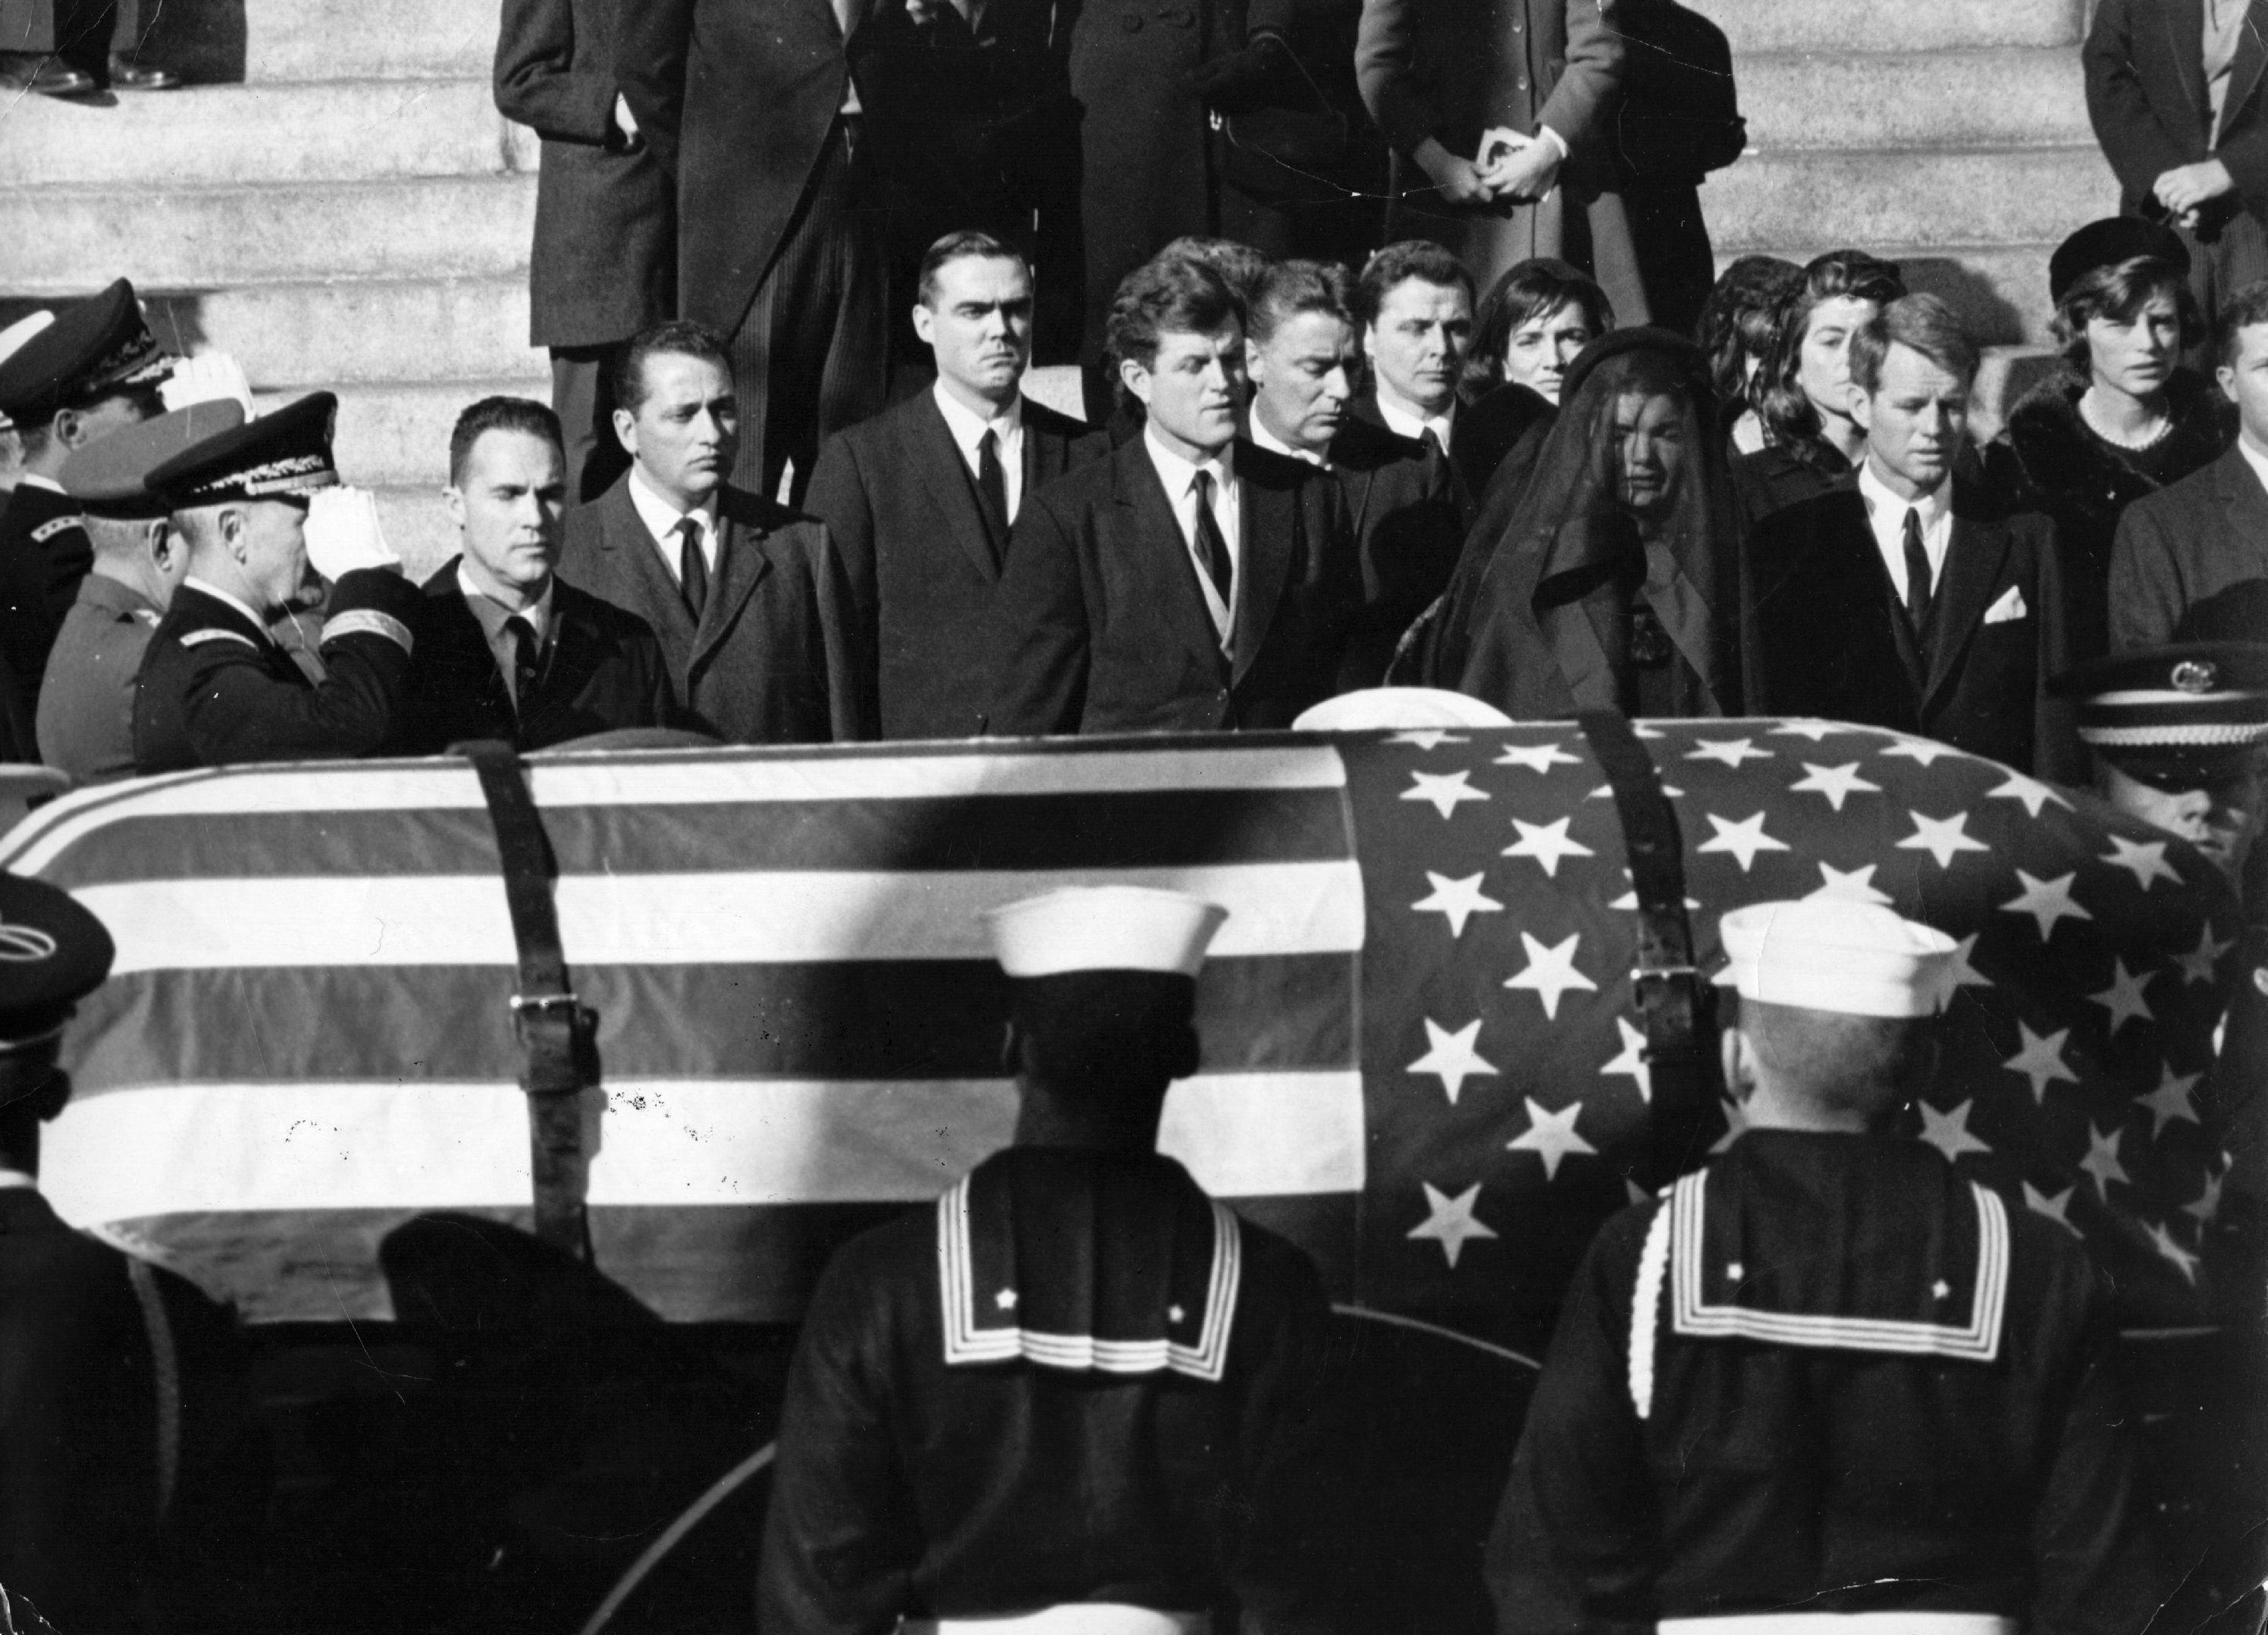 an introduction to the history of assassination of john f kennedy John f kennedy was the thirty-fifth president of the united states  thus, the  kennedys were a wealthy family with a history of political and public service.